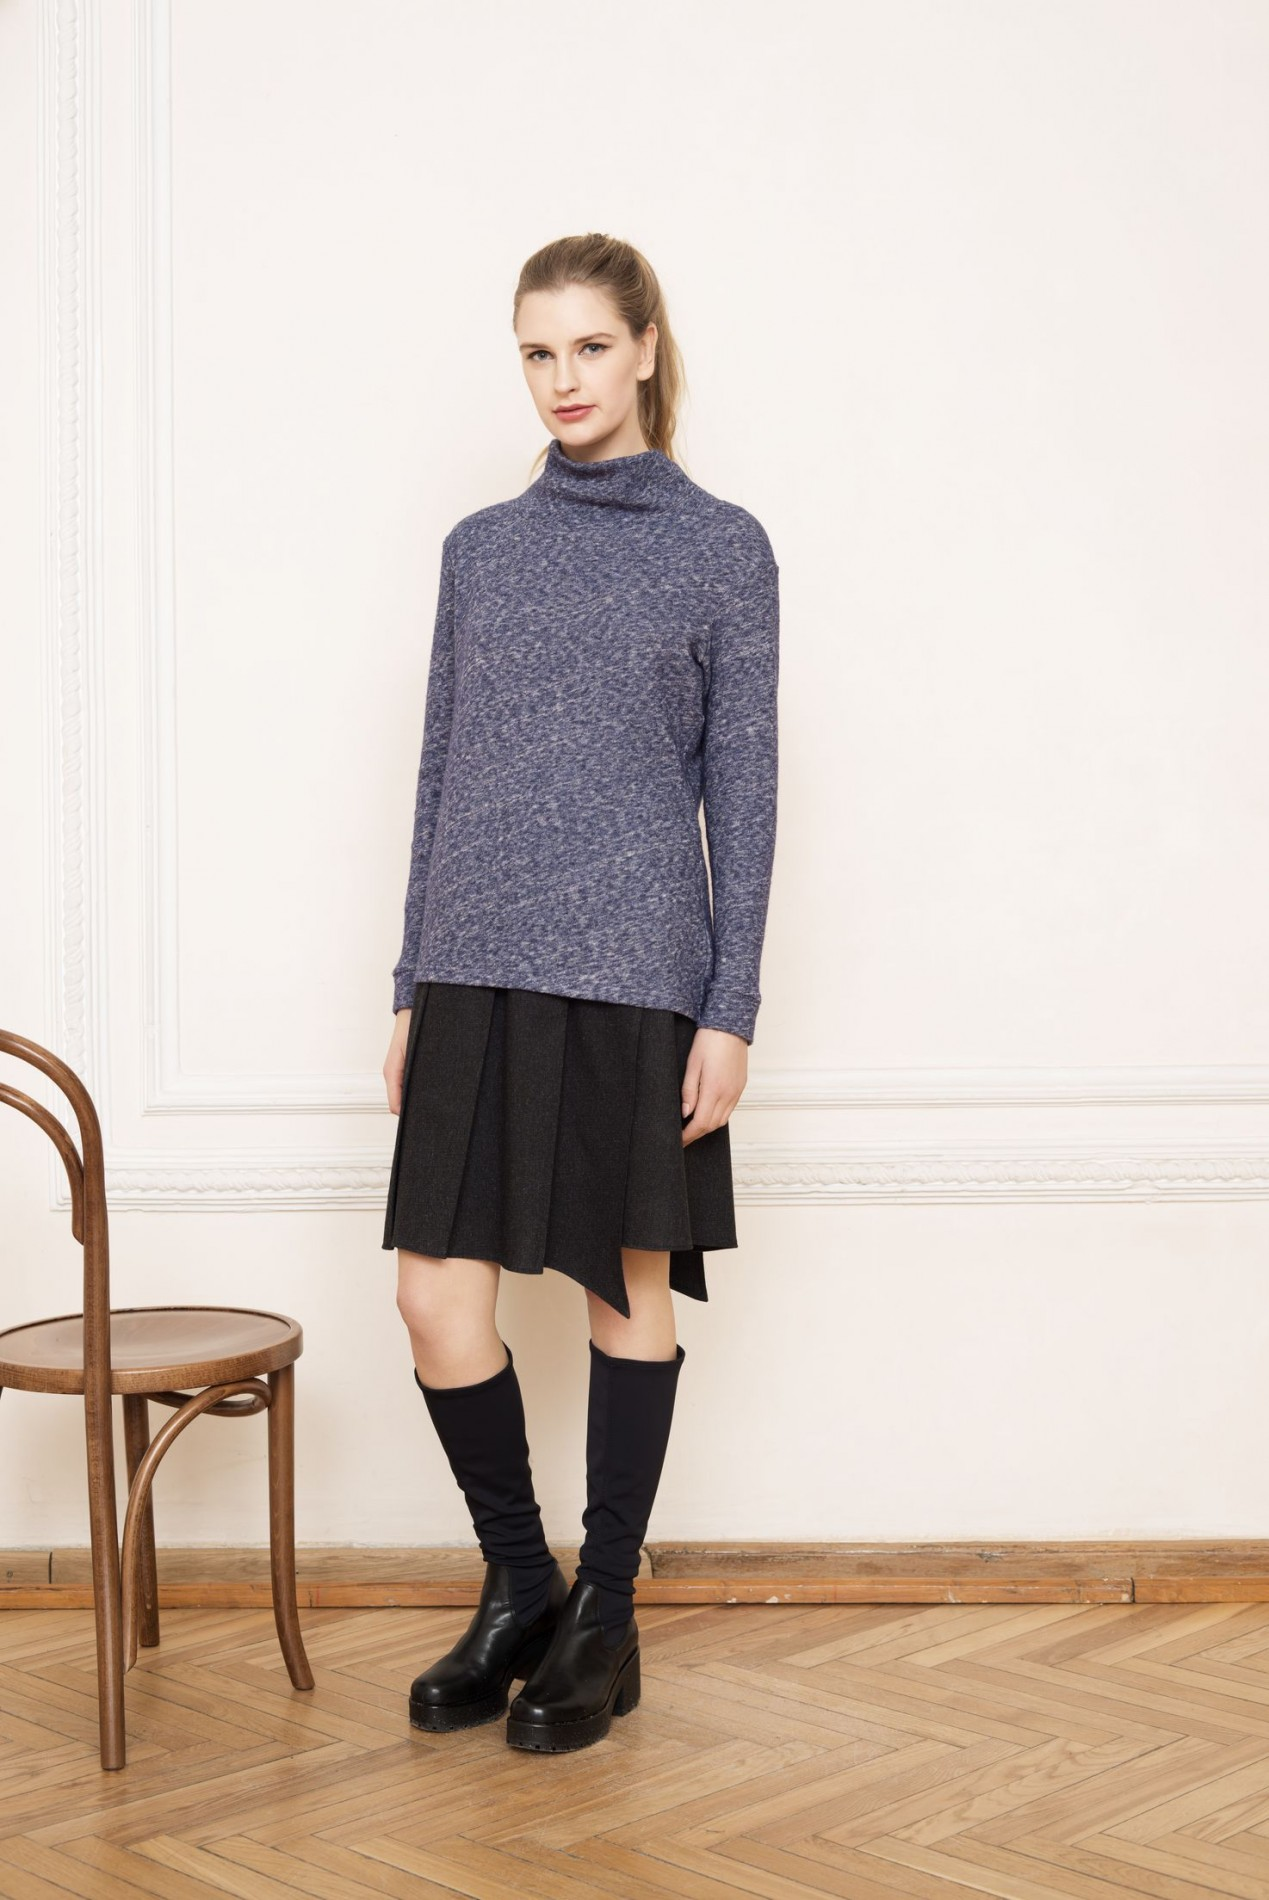 ELBRUS Asymmetric Sweater A and ALPS Pleat Skirt